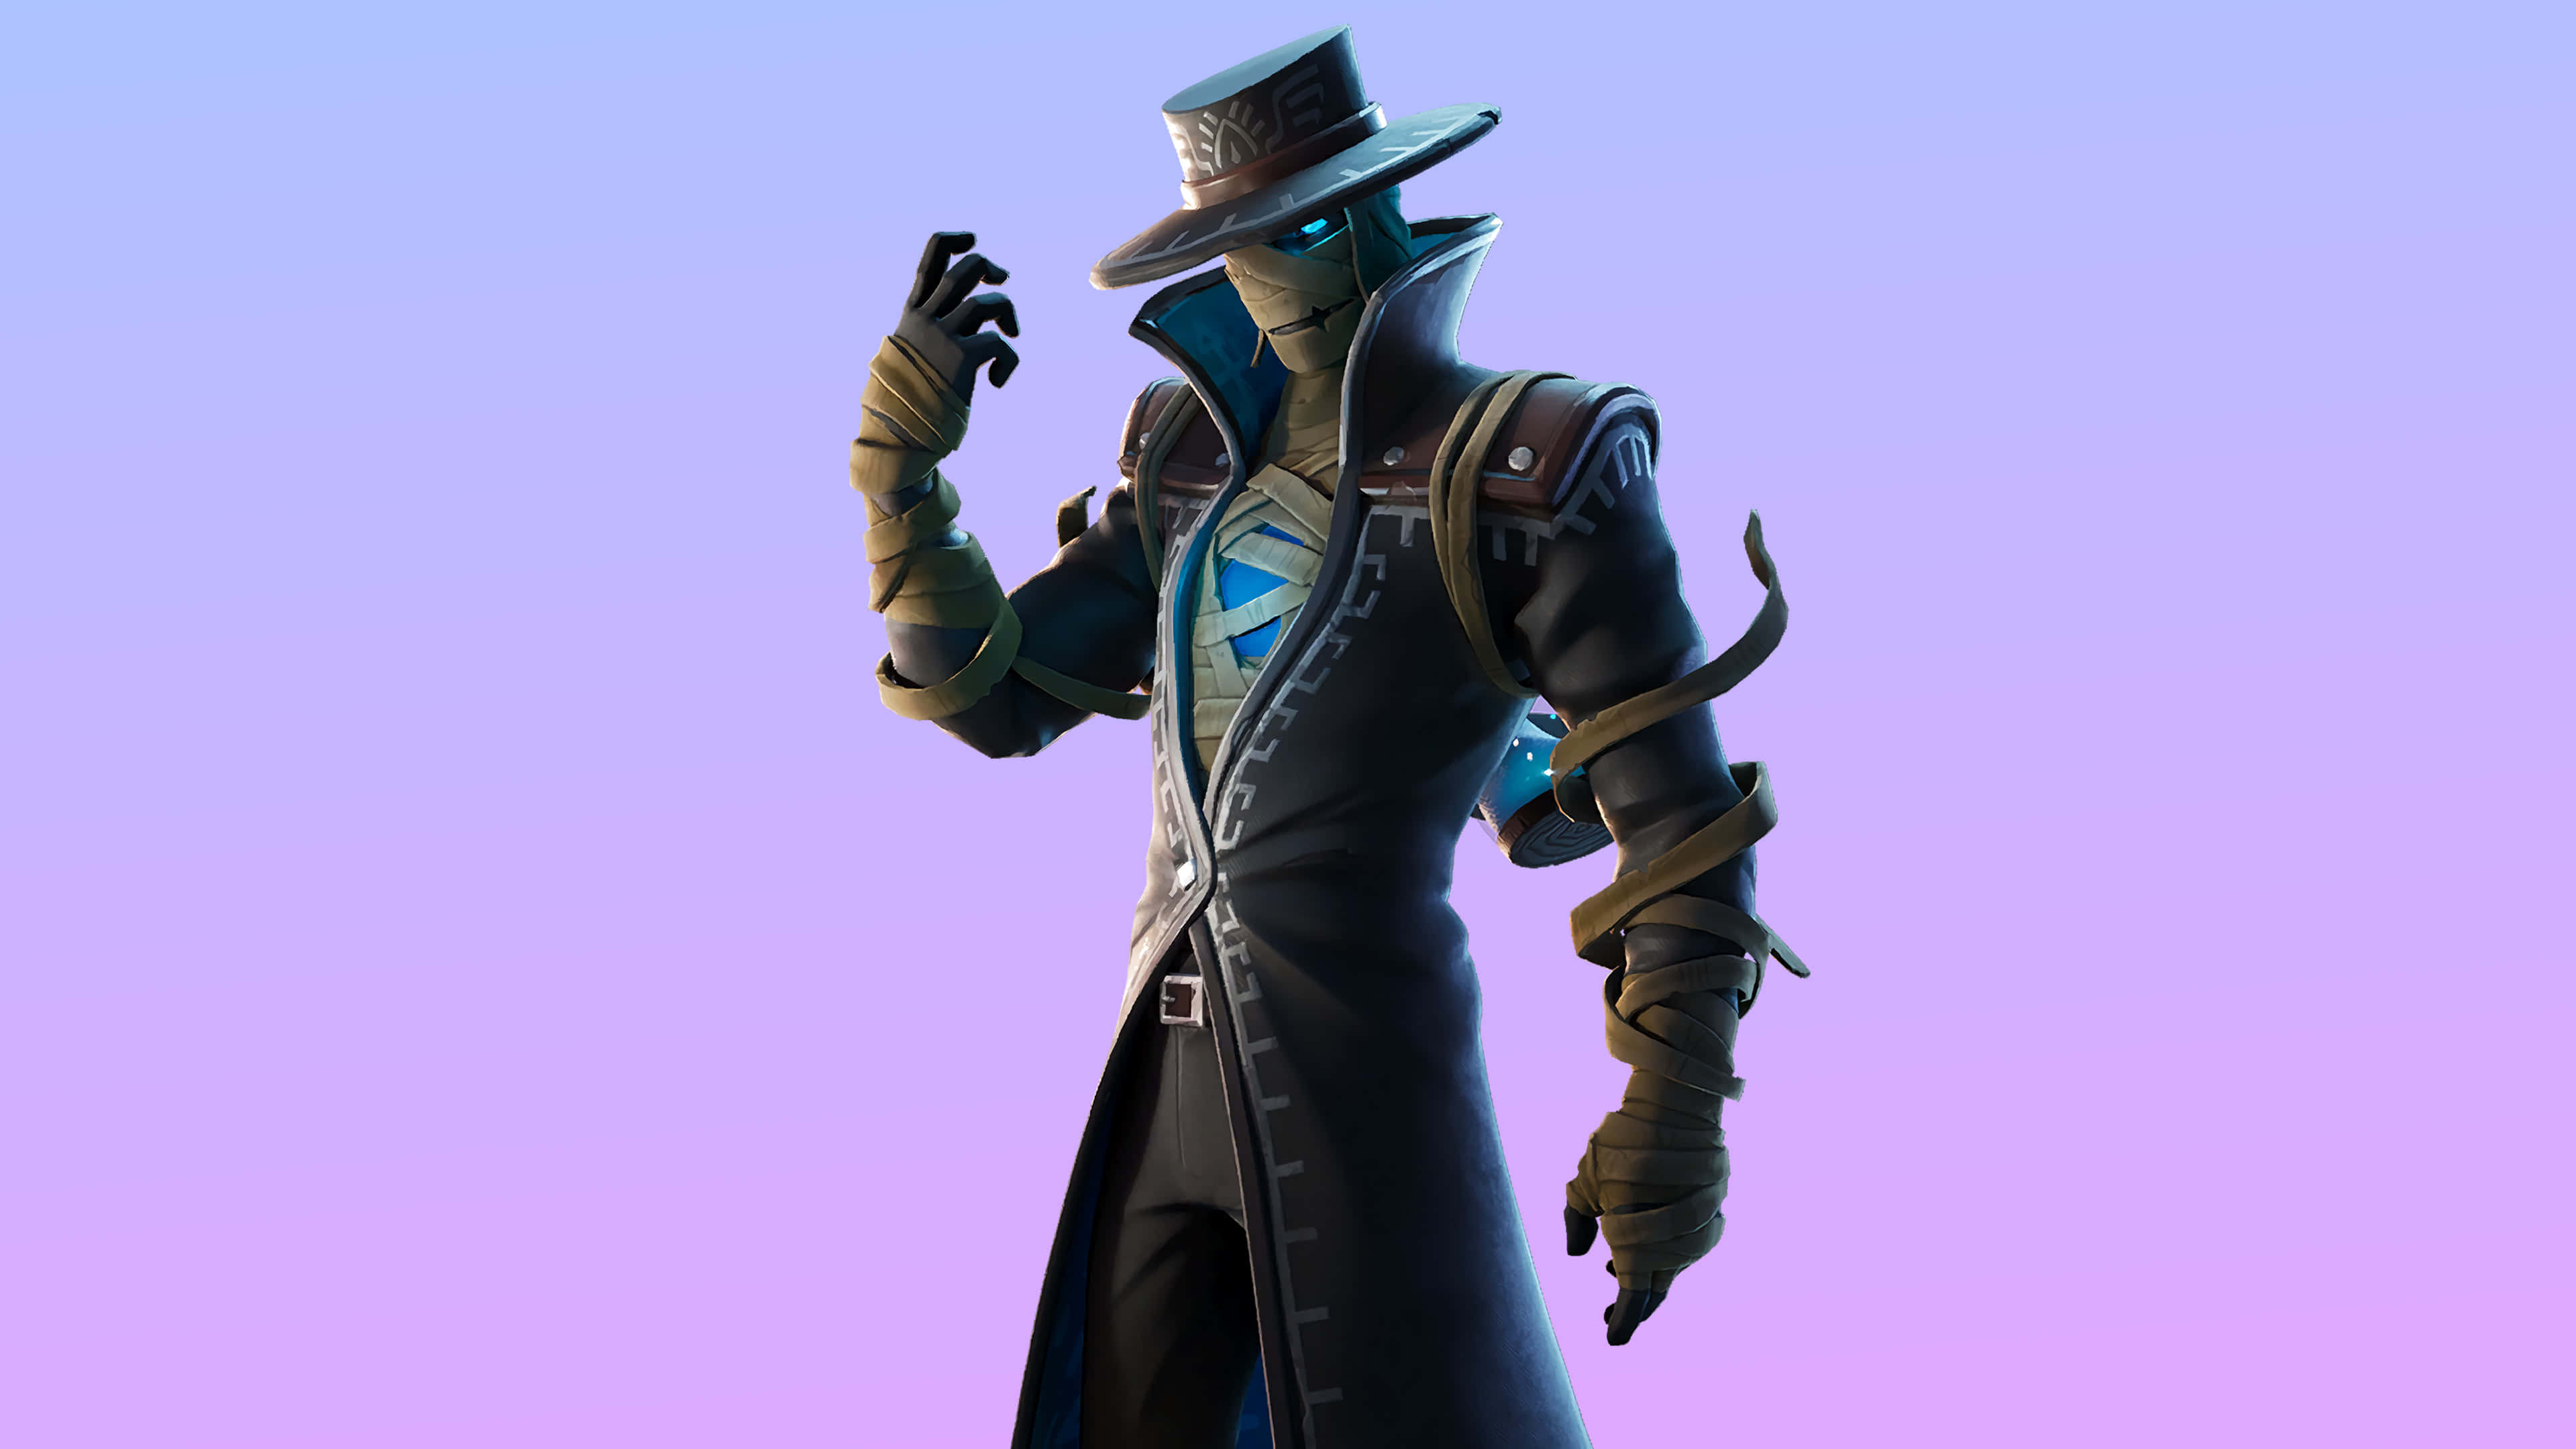 fortnite cryptic curse set wrath skin outfit uhd 4k wallpaper